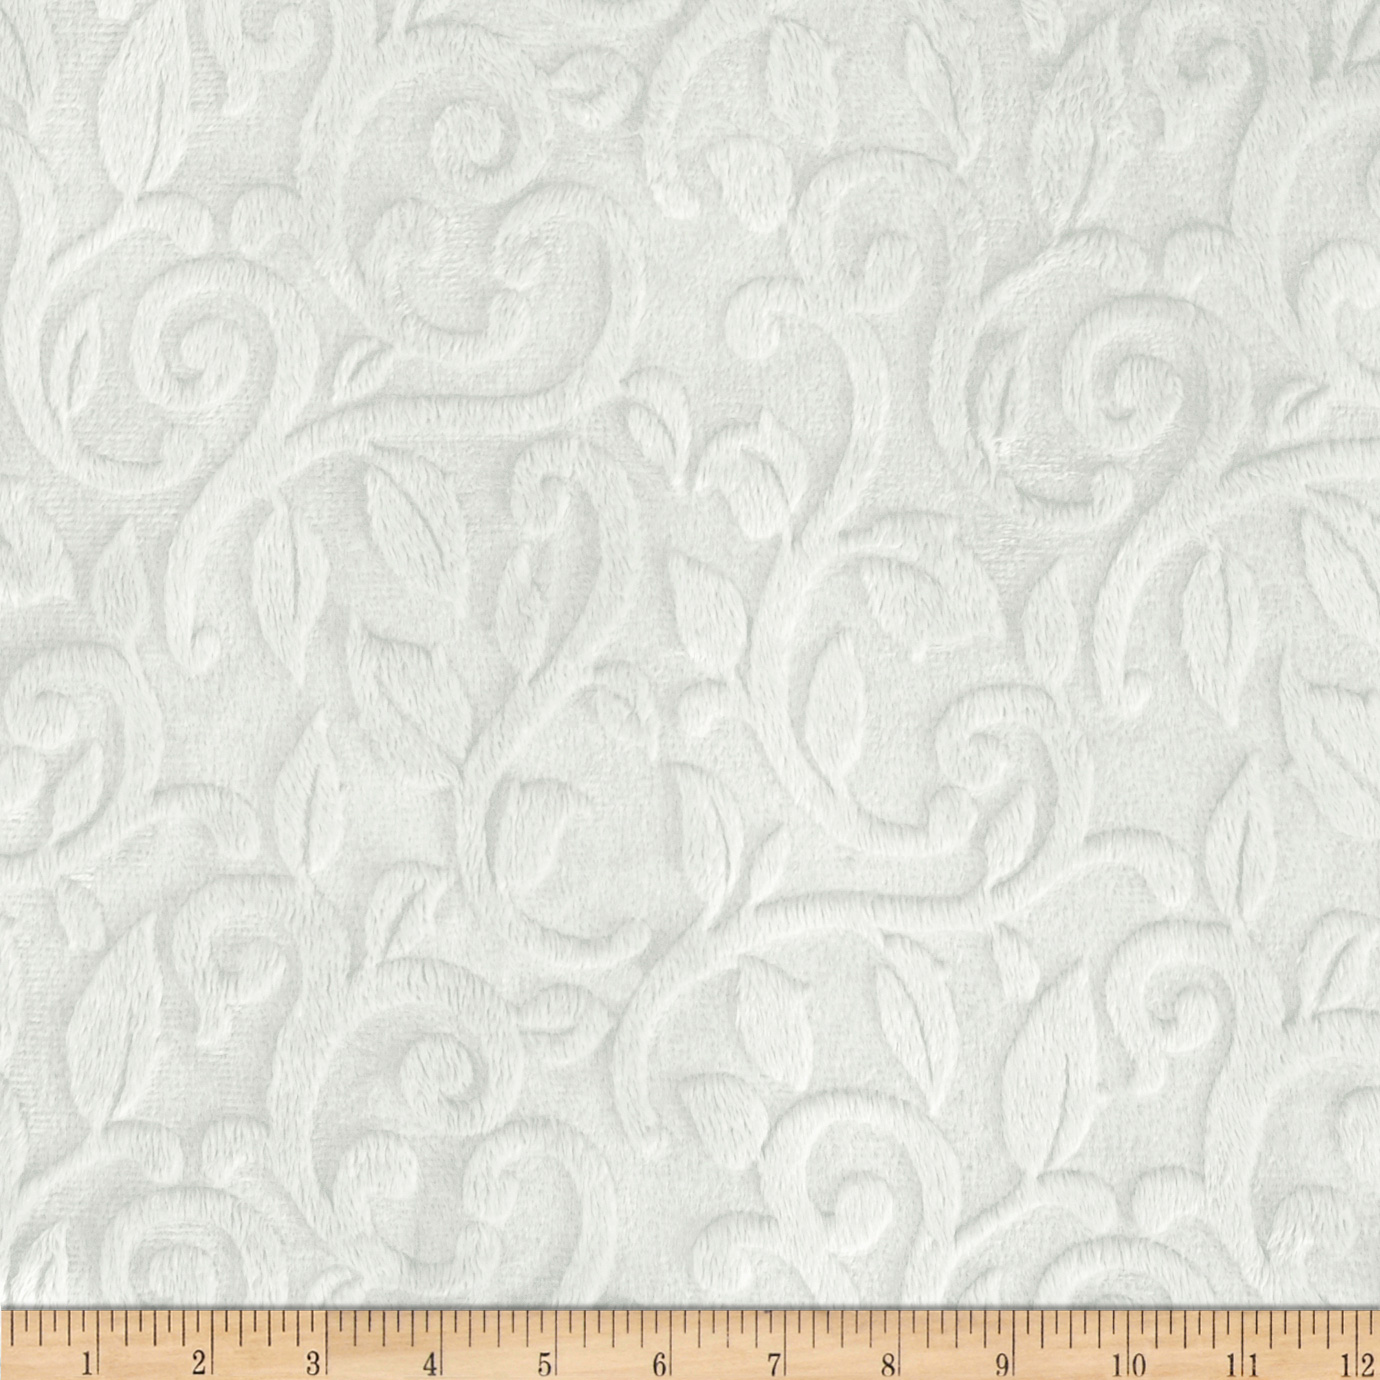 Shannon_Minky_Cuddle_Embossed_Vine_White_Fabric